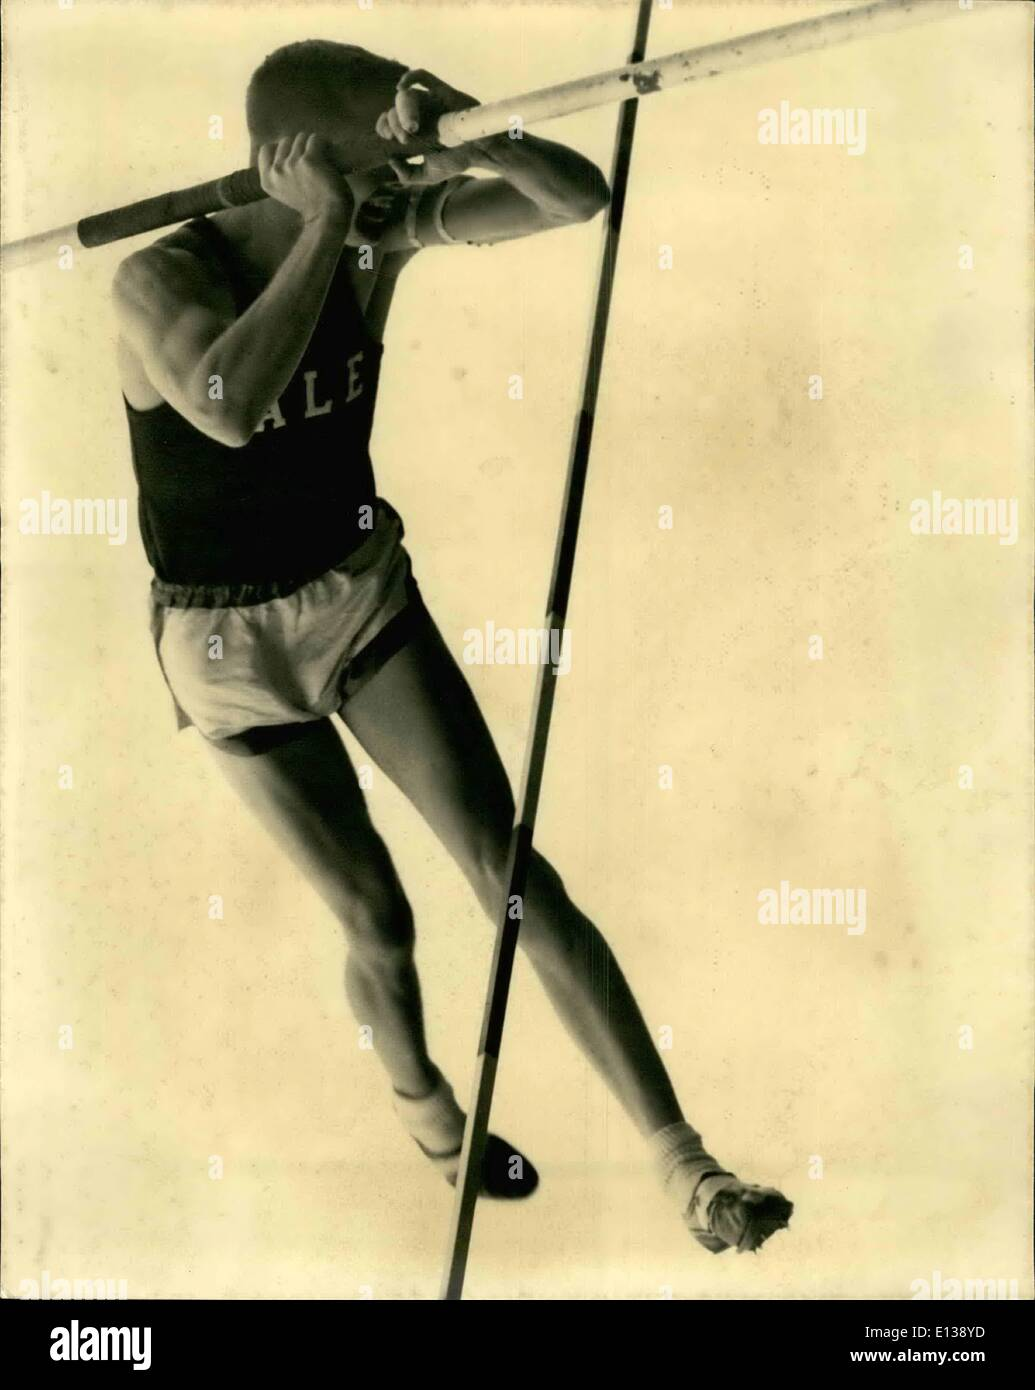 Feb. 29, 2012 - Yale man in pole vault. Harold Work (Yale) in the pole vault at the Anglo-American Inter-Varsity Athlete meet between Oxford and Cambridge and Yale and West Point at White City, London today June 11 - Stock Image